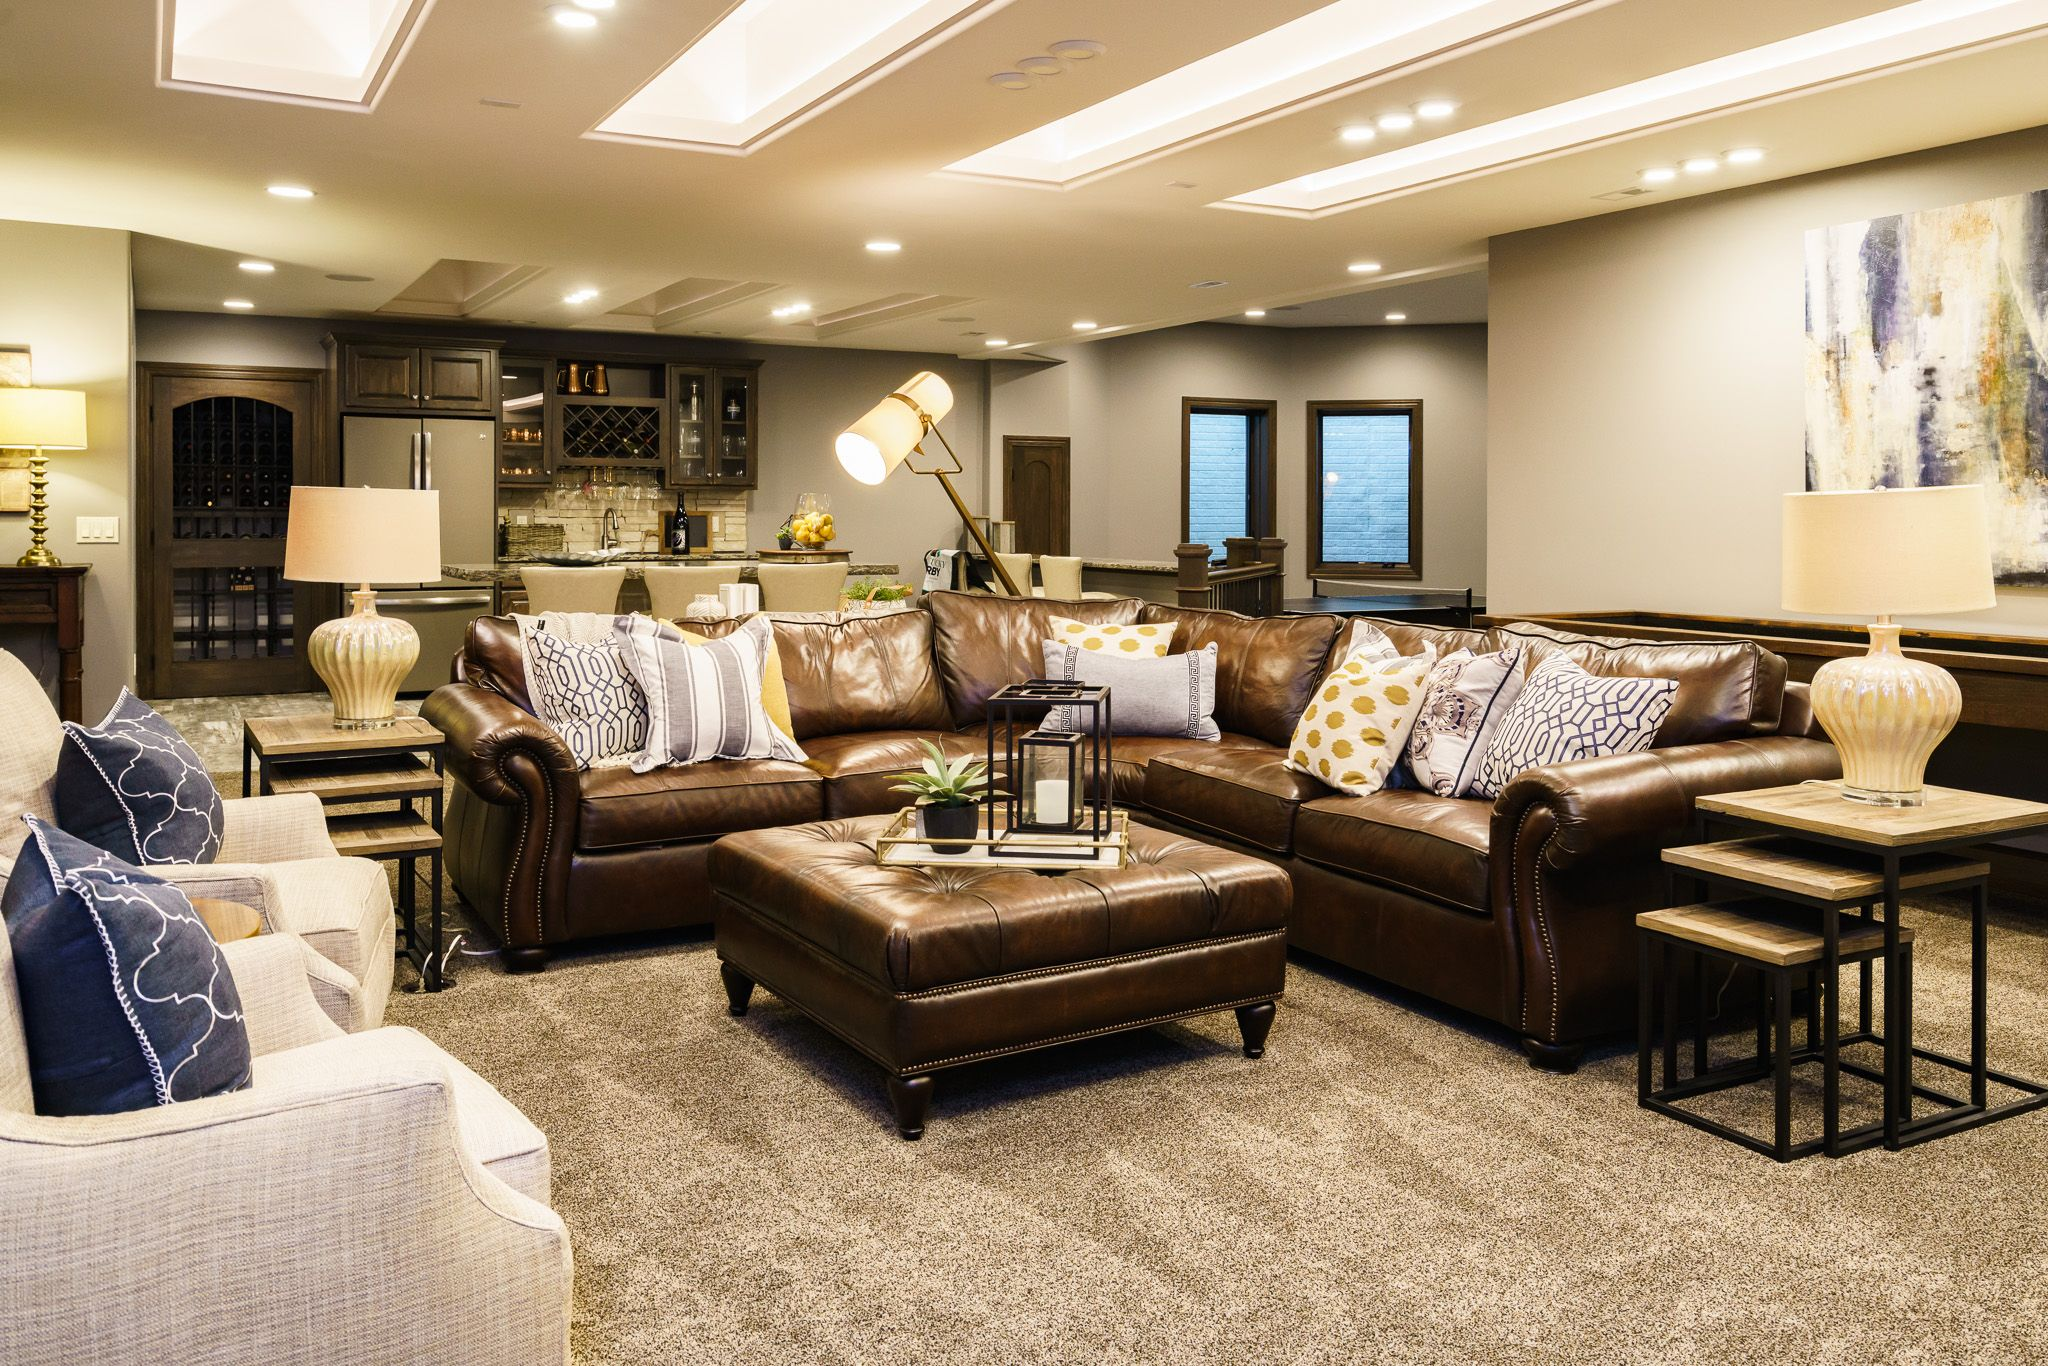 Contemporary modern basement design ideas leather furniture with fun and funky lighting art and decor best of omaha interior design 6x in a row